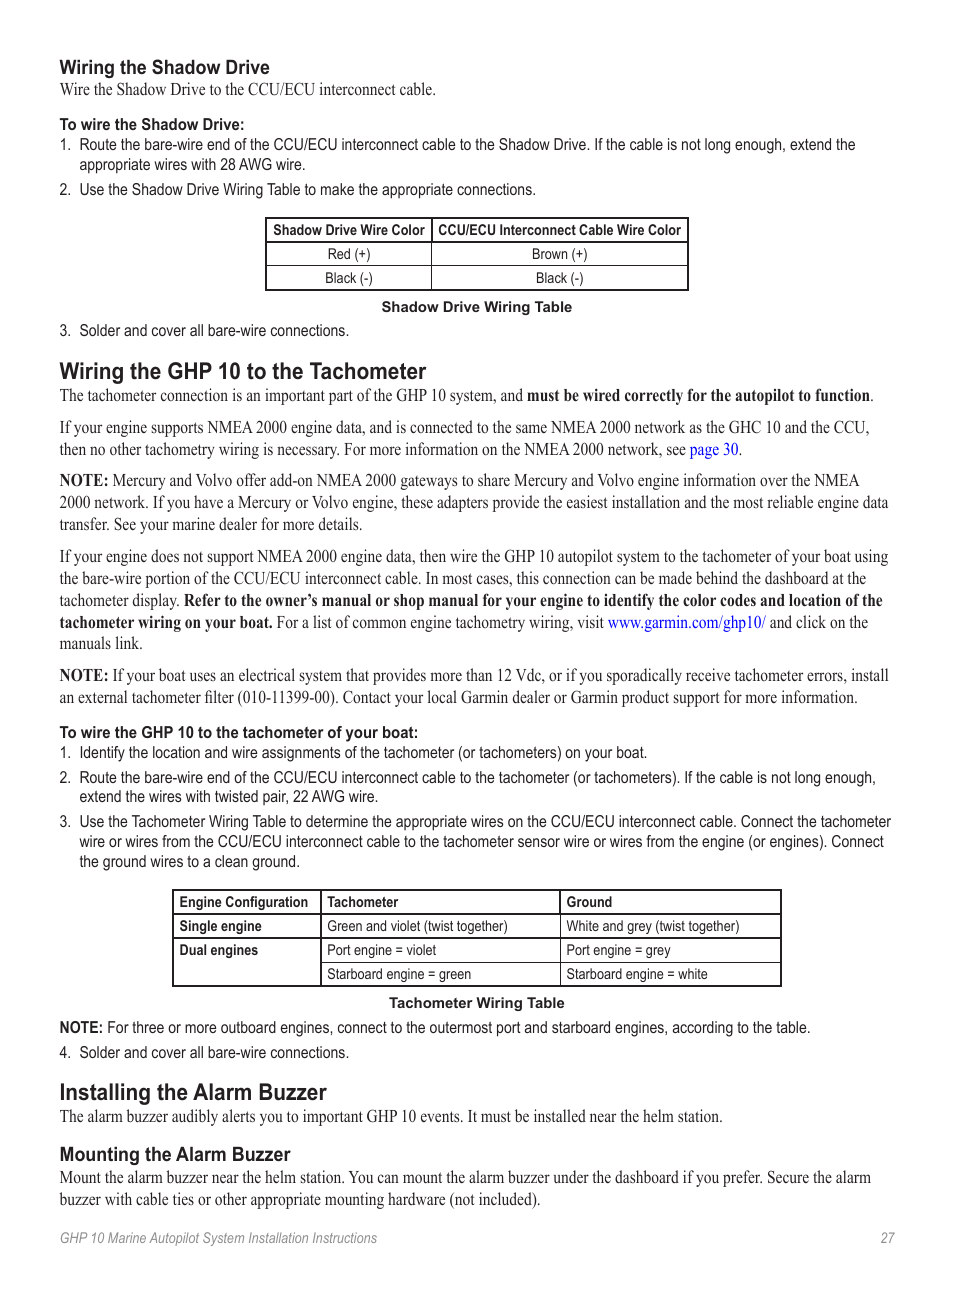 Wiring the shadow drive, Wiring the ghp 10 to the tachometer, Installing  the alarm buzzer | Garmin GHP 10 User Manual | Page 27 / 48